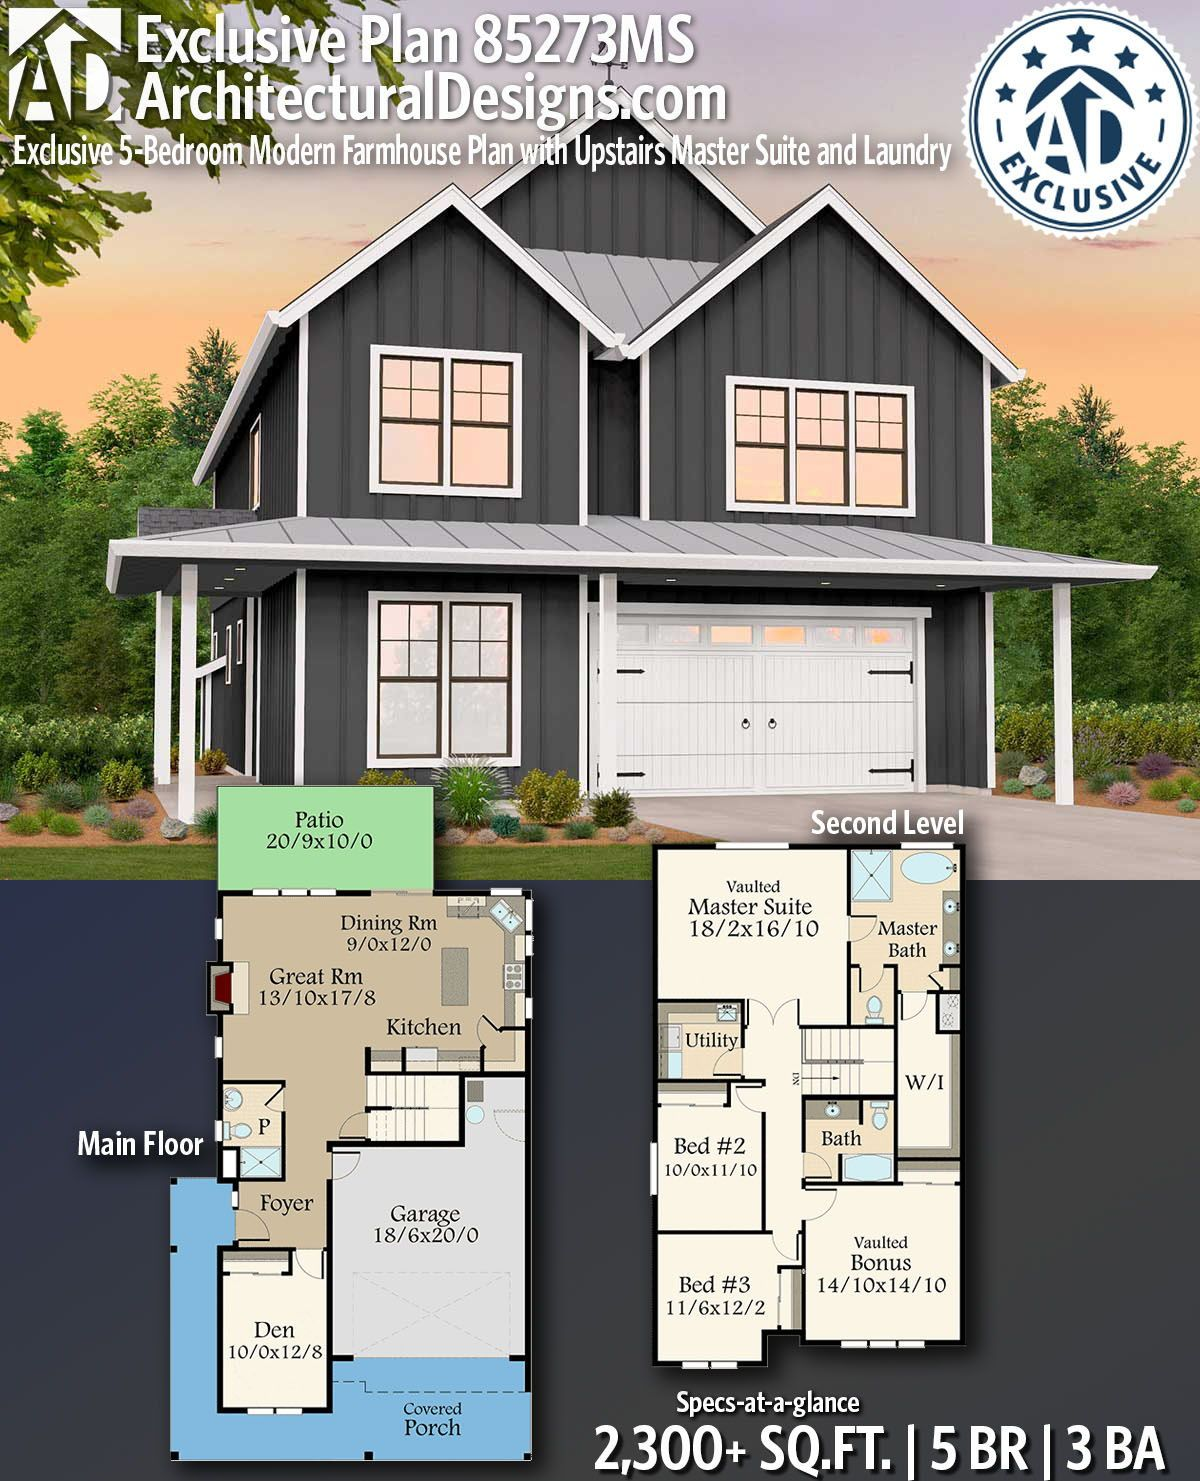 Plan 85273ms Exclusive 5 Bedroom Modern Farmhouse Plan With Upstairs Master Suite And Laundry Modern Farmhouse Plans Farmhouse Plans House Plans